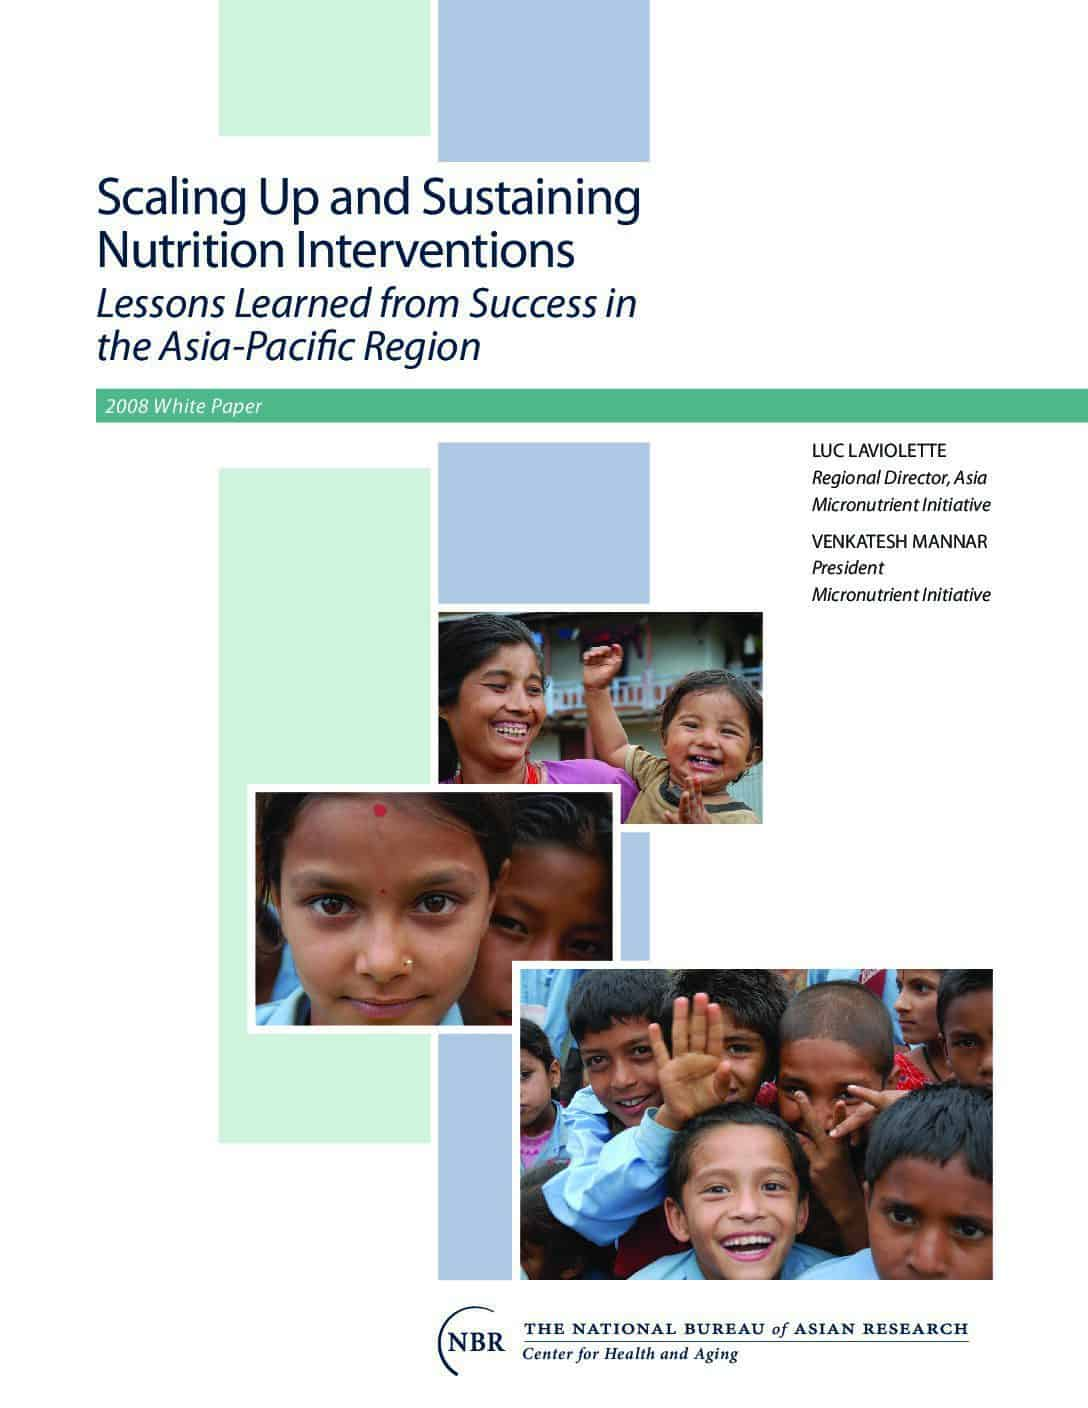 Scaling up and sustaining nutrition interventions: lessons learned from success in the Asia-Pacific region thumbnail